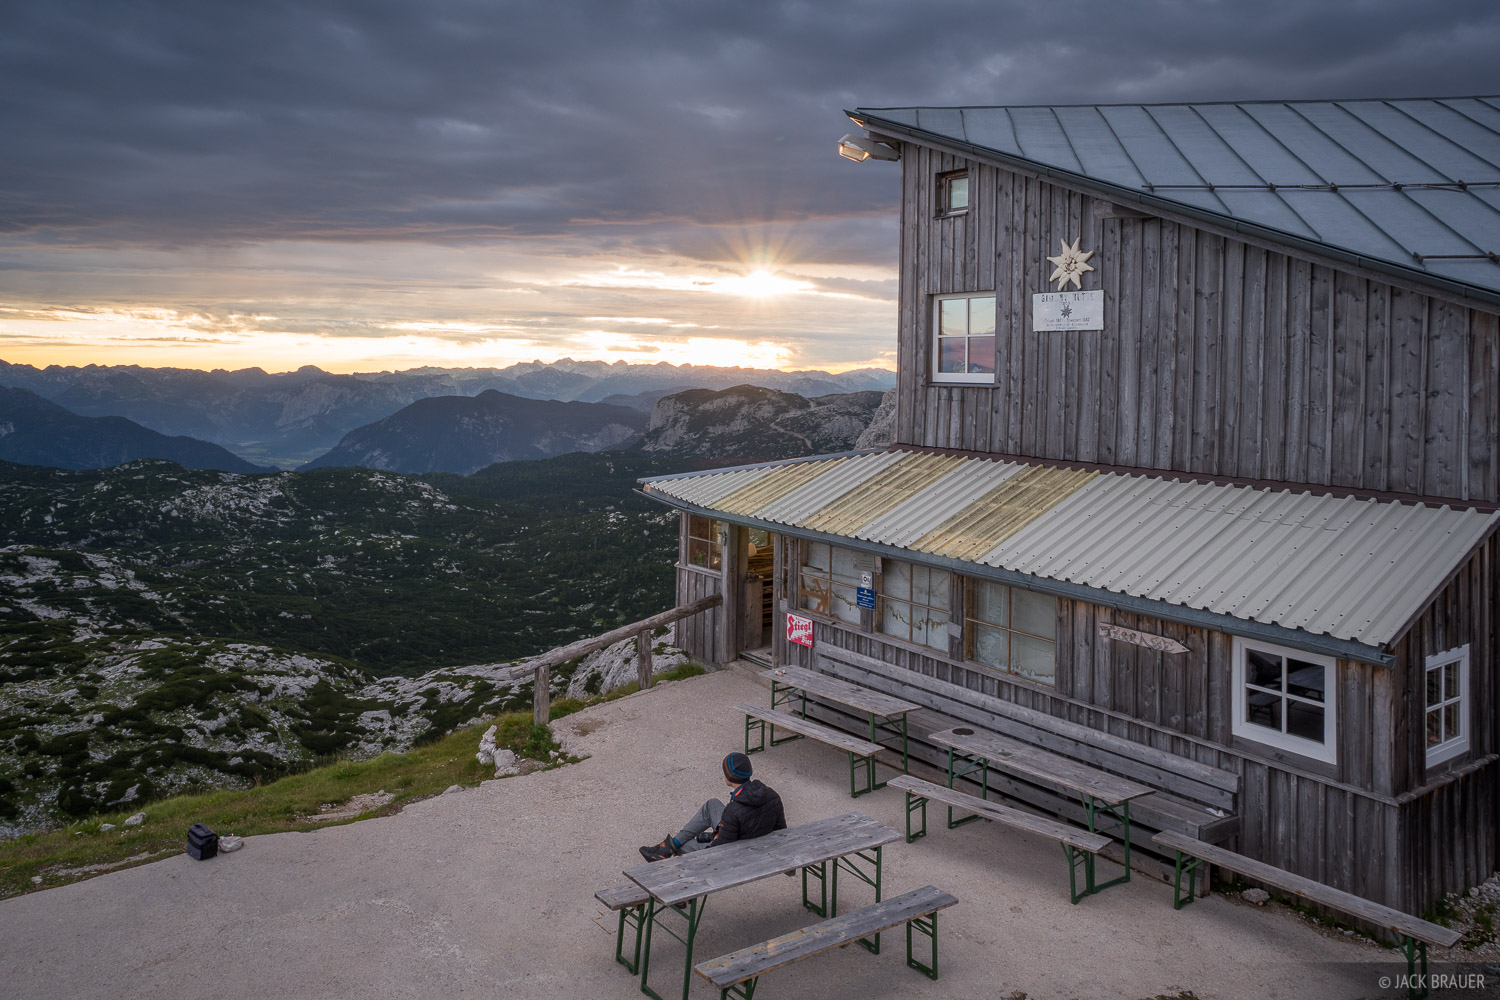 Austria, Dachstein, Simony Hütte, hut, photo